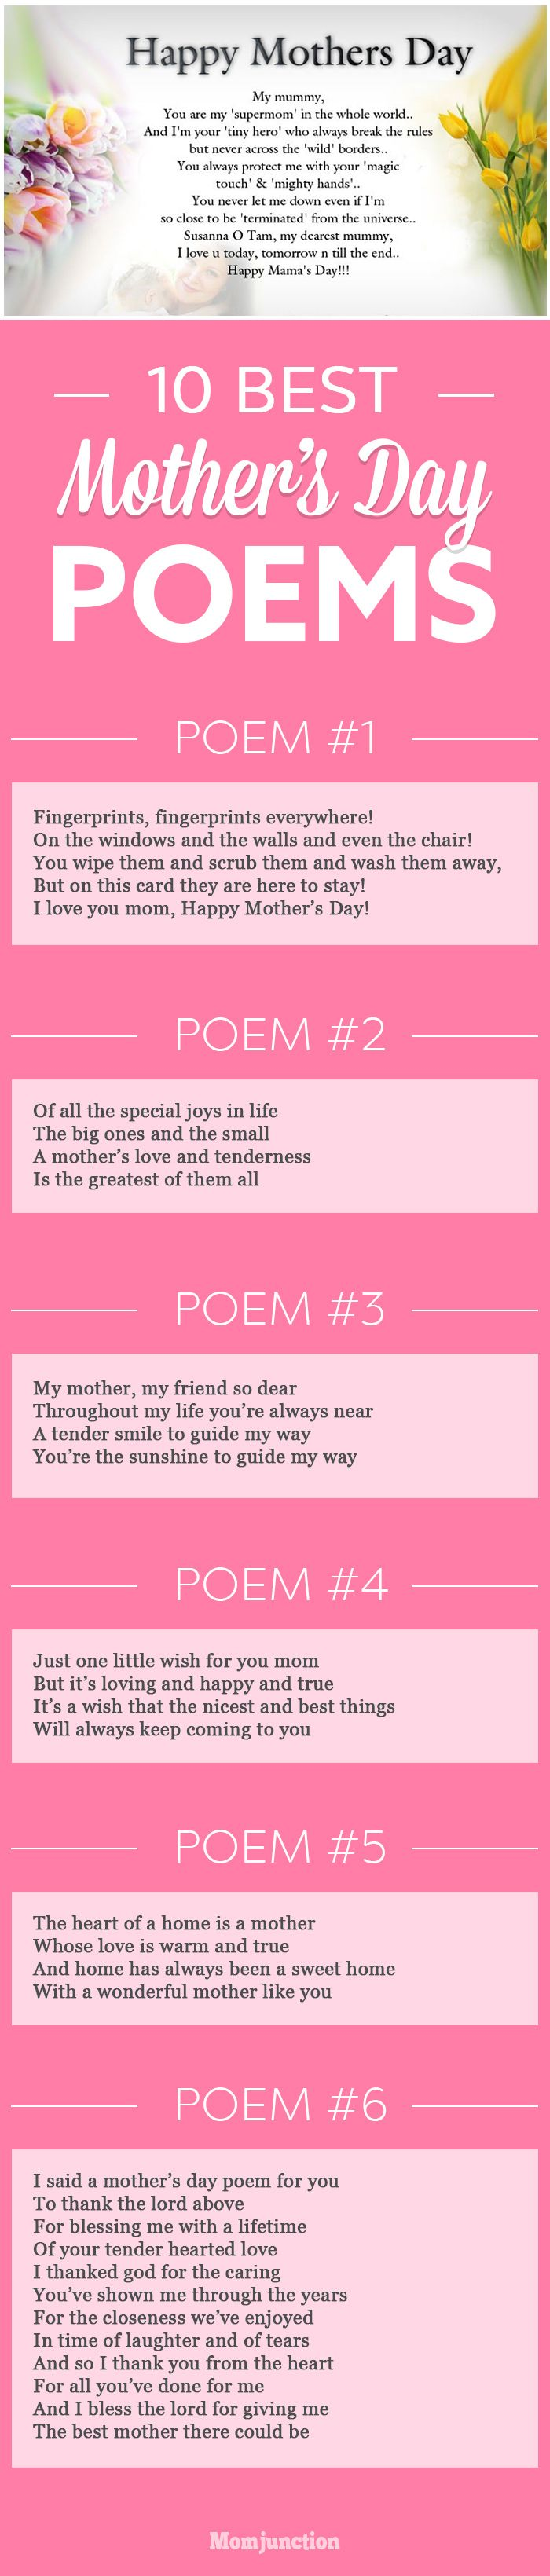 essays heroes moms Hero essays about moms masuzi december 24, 2017 essay about heroes mothers mother hero essay write an essay about my mom write an essay about my hero.